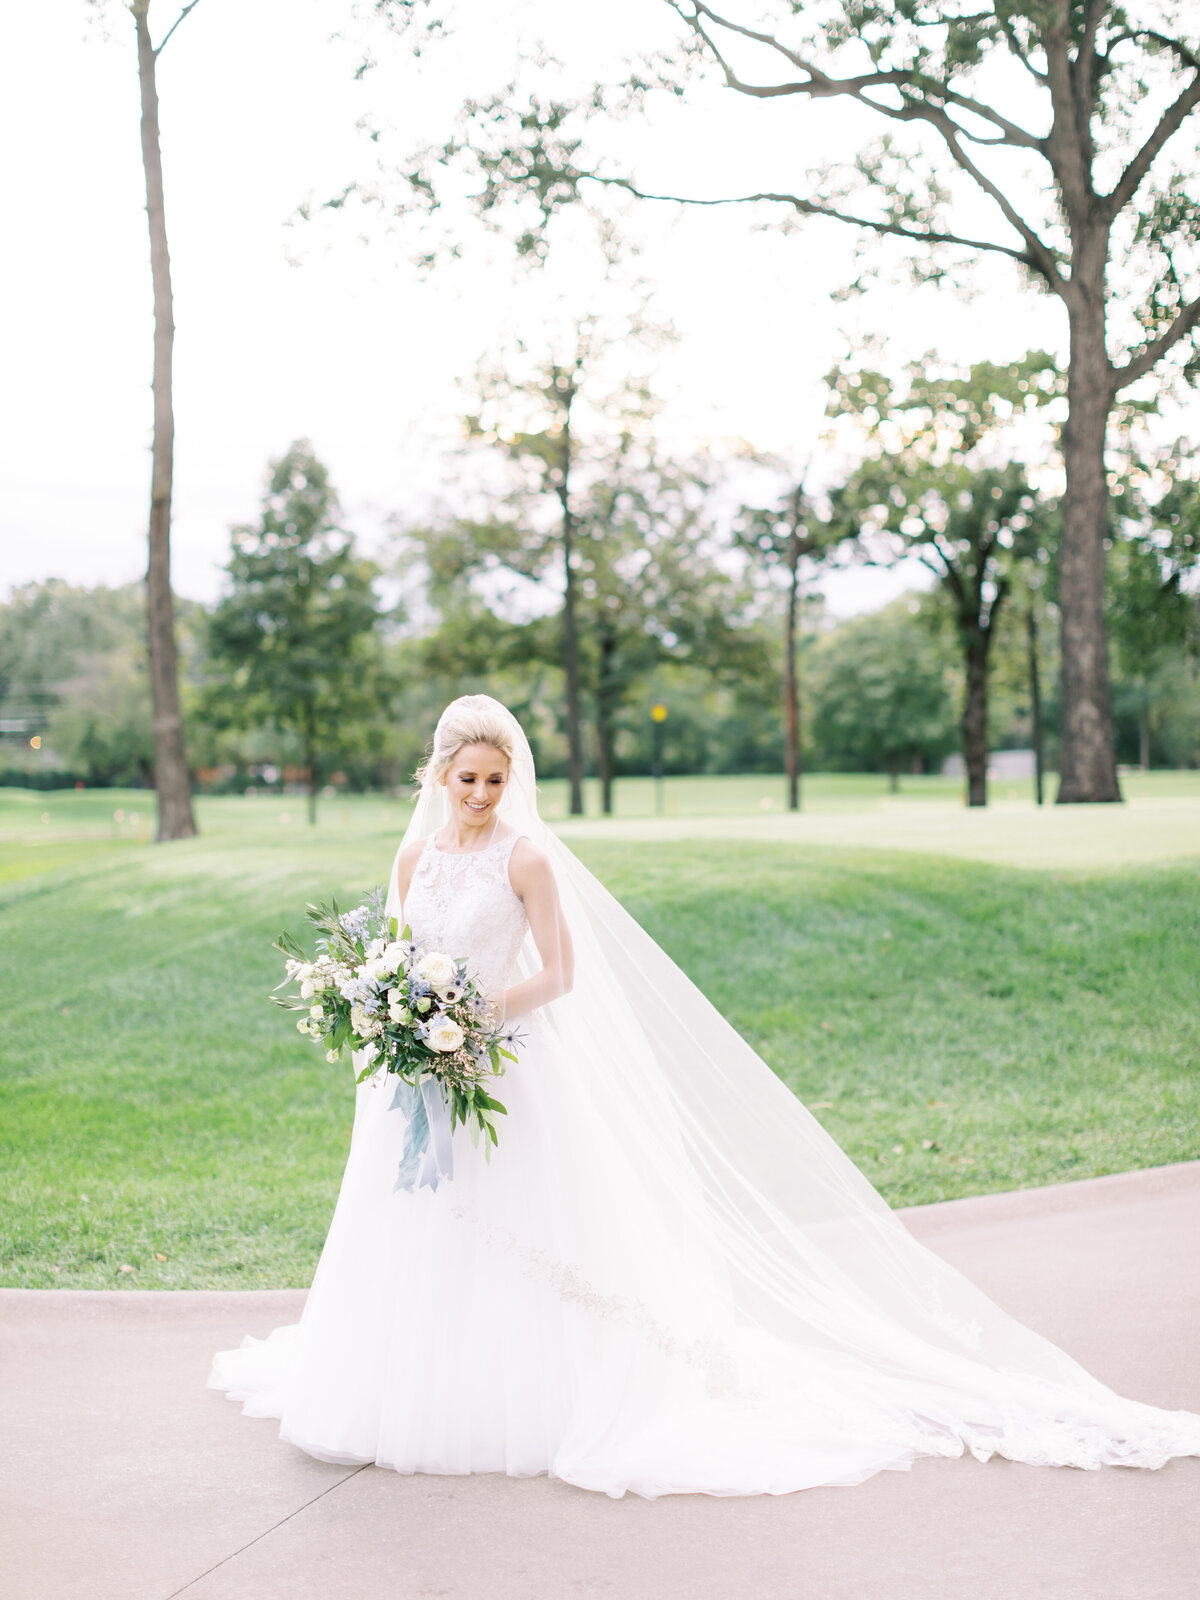 TiffaneyChildsPhotography-ChicagoWeddingPhotographer-Caitlin+Devin-MedinahCountryClubWedding-BridalPortraits-27